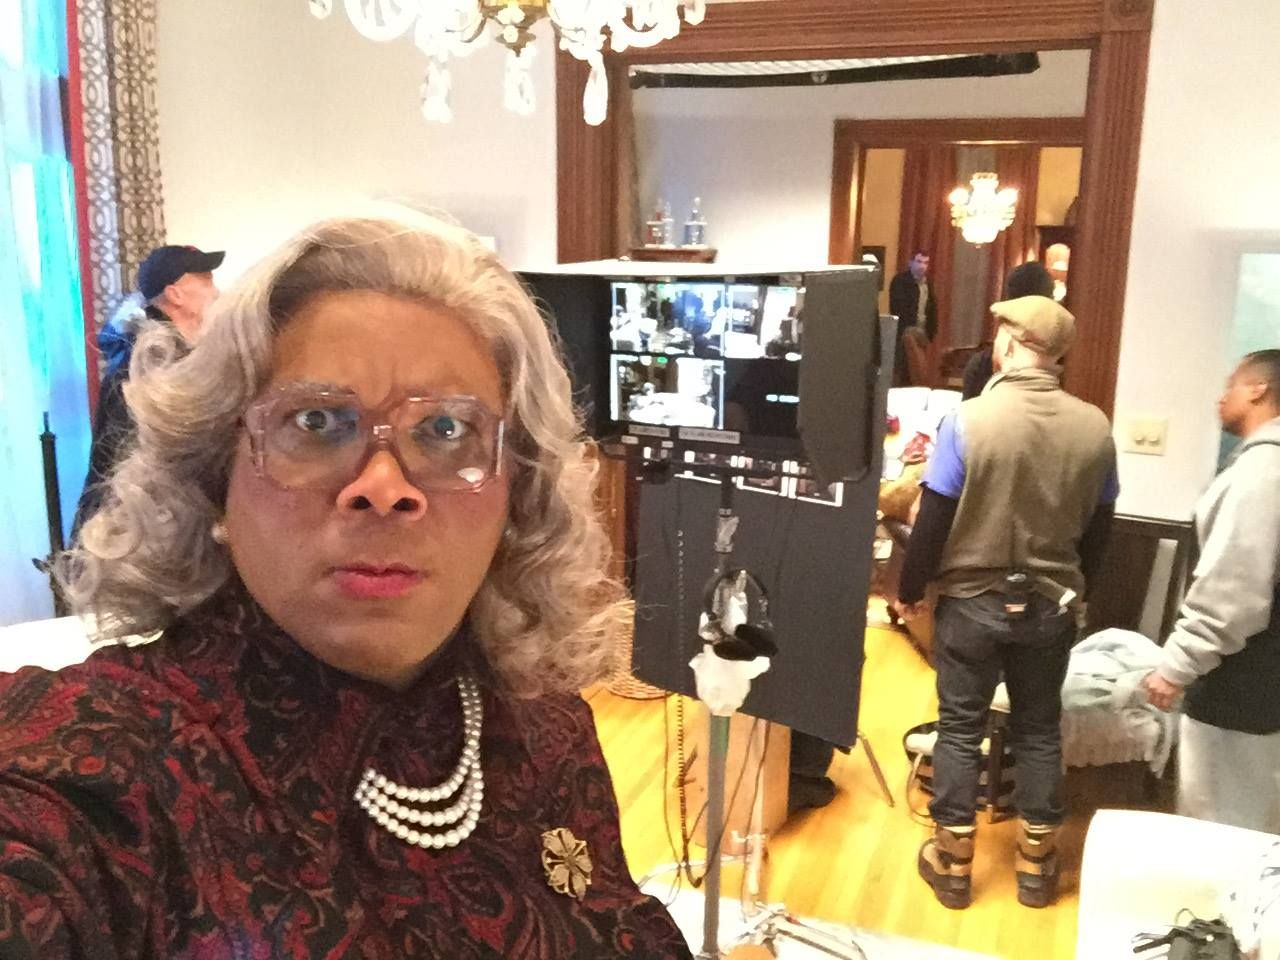 Tyler Perry Films 'Boo! A Madea Halloween' In 6 Days